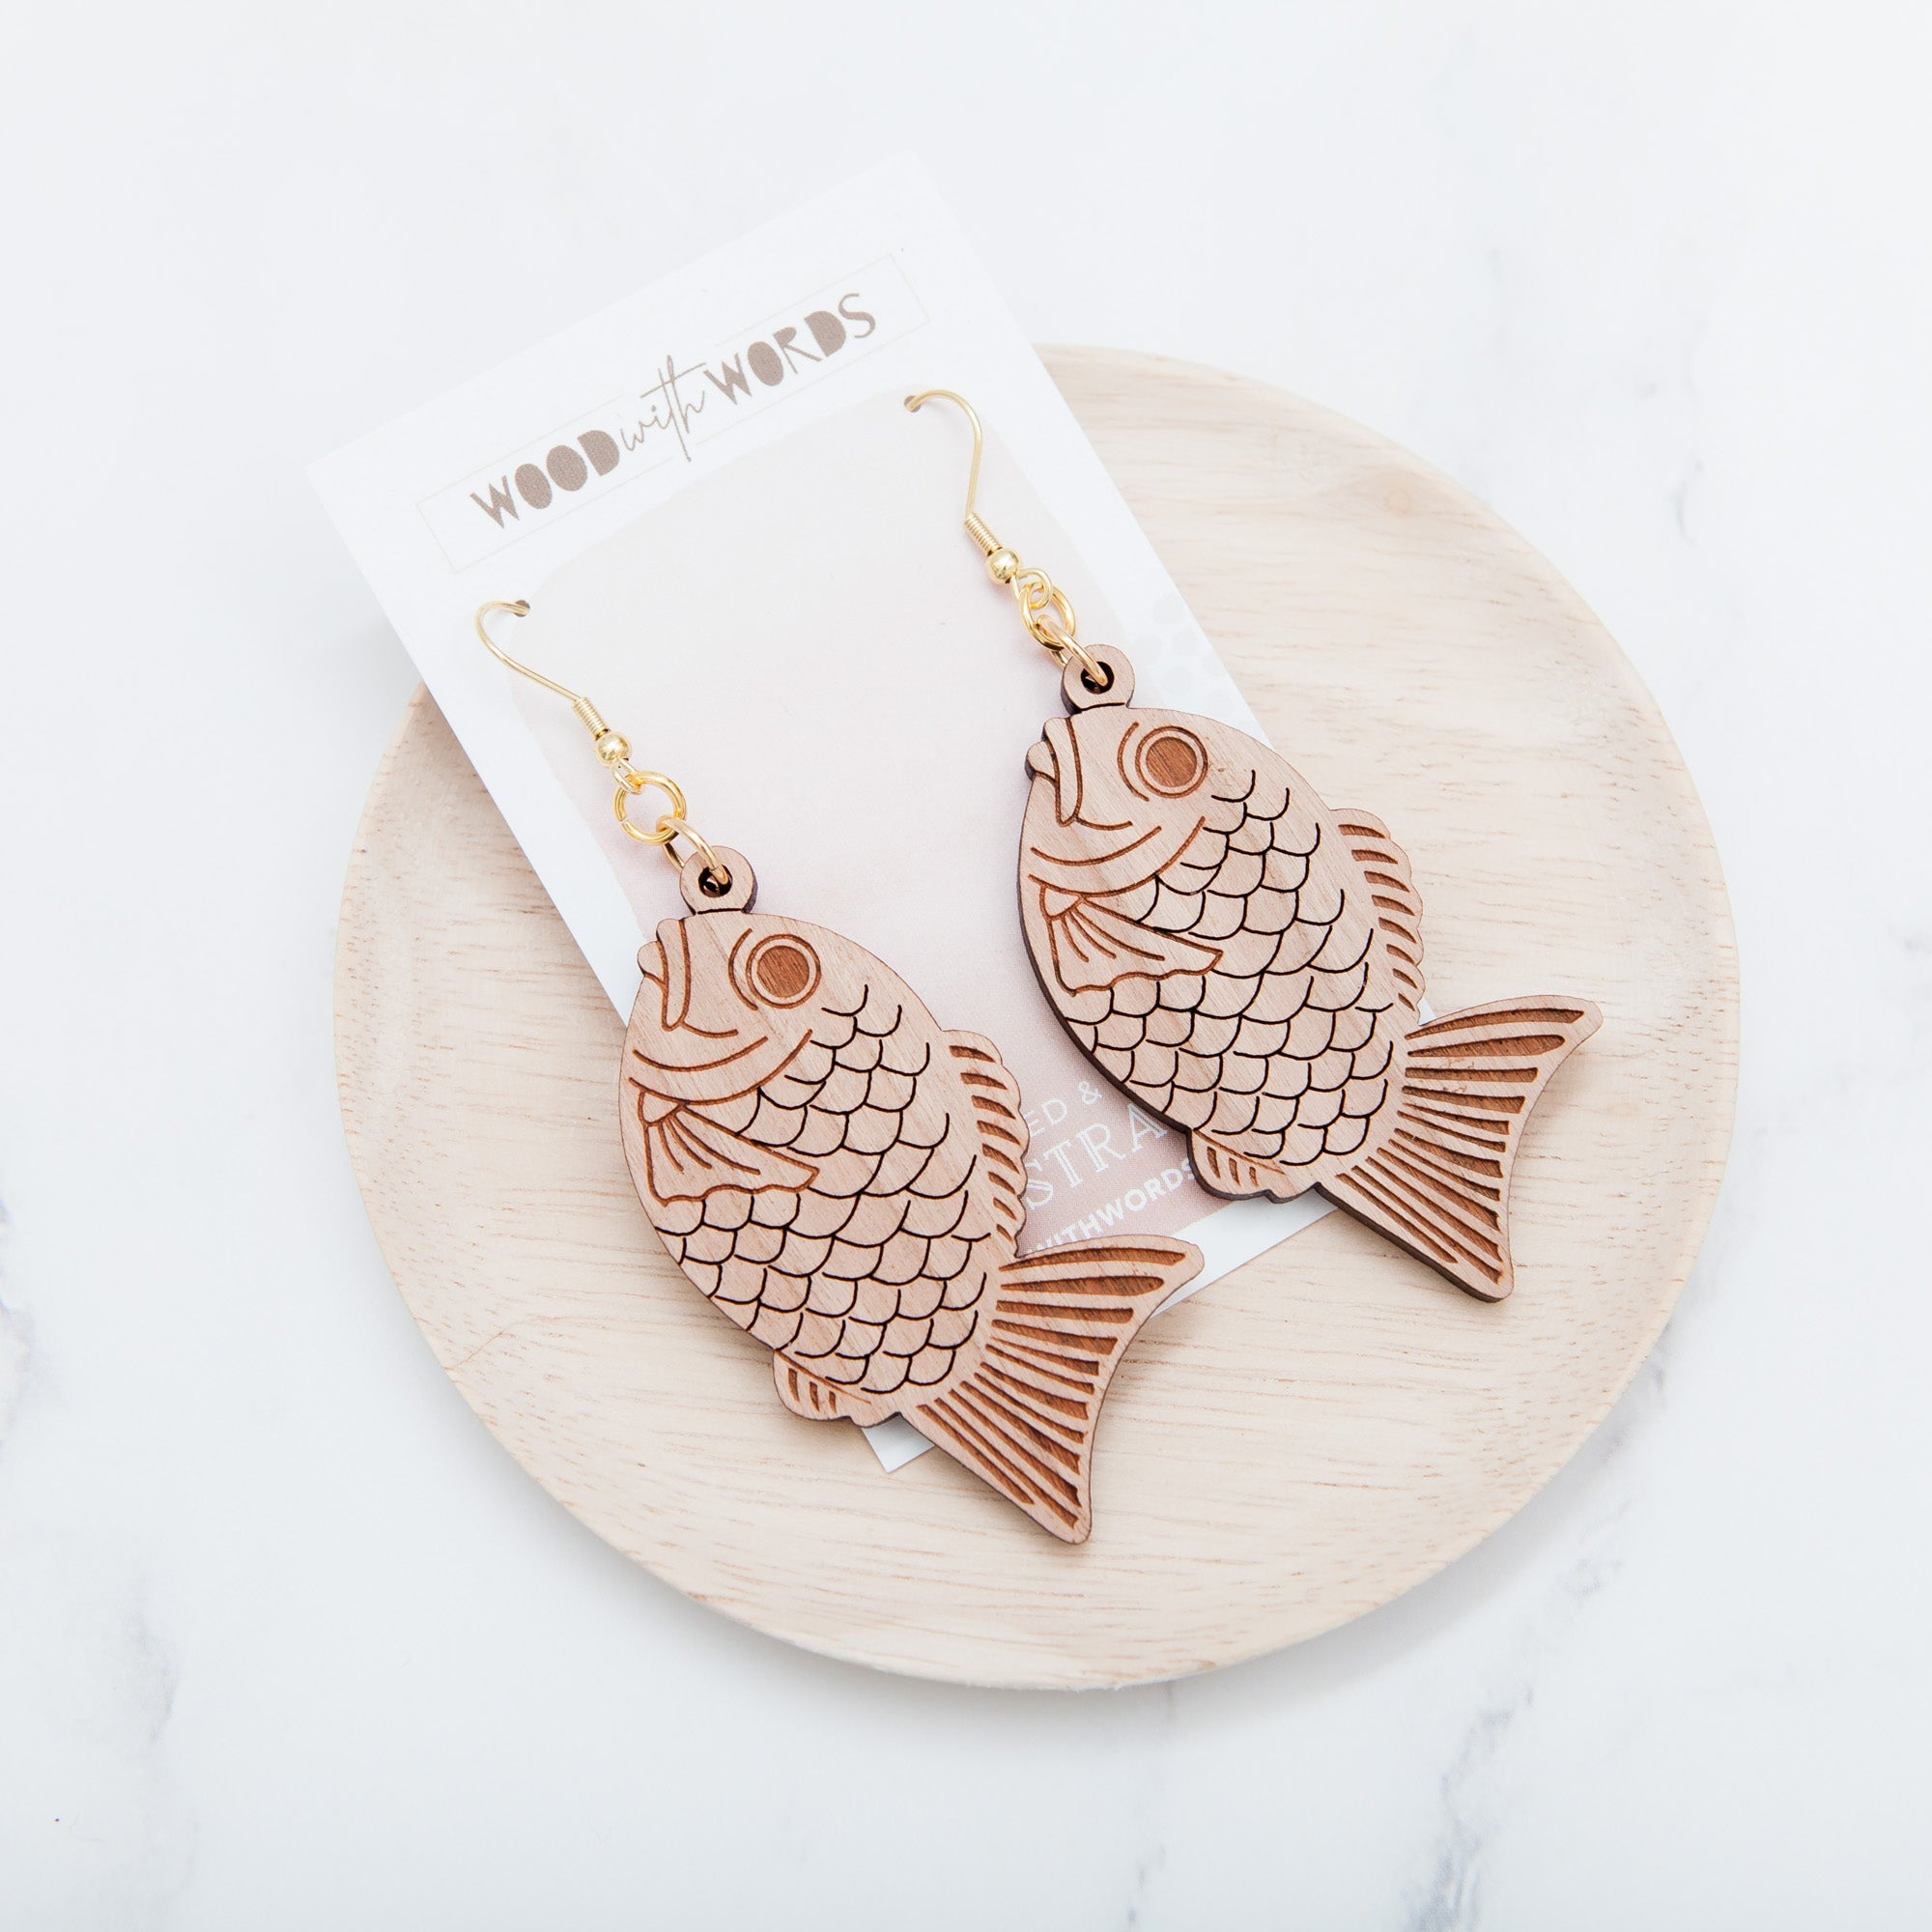 Taiyaki Seabream Dangle Earrings - Wood With Words